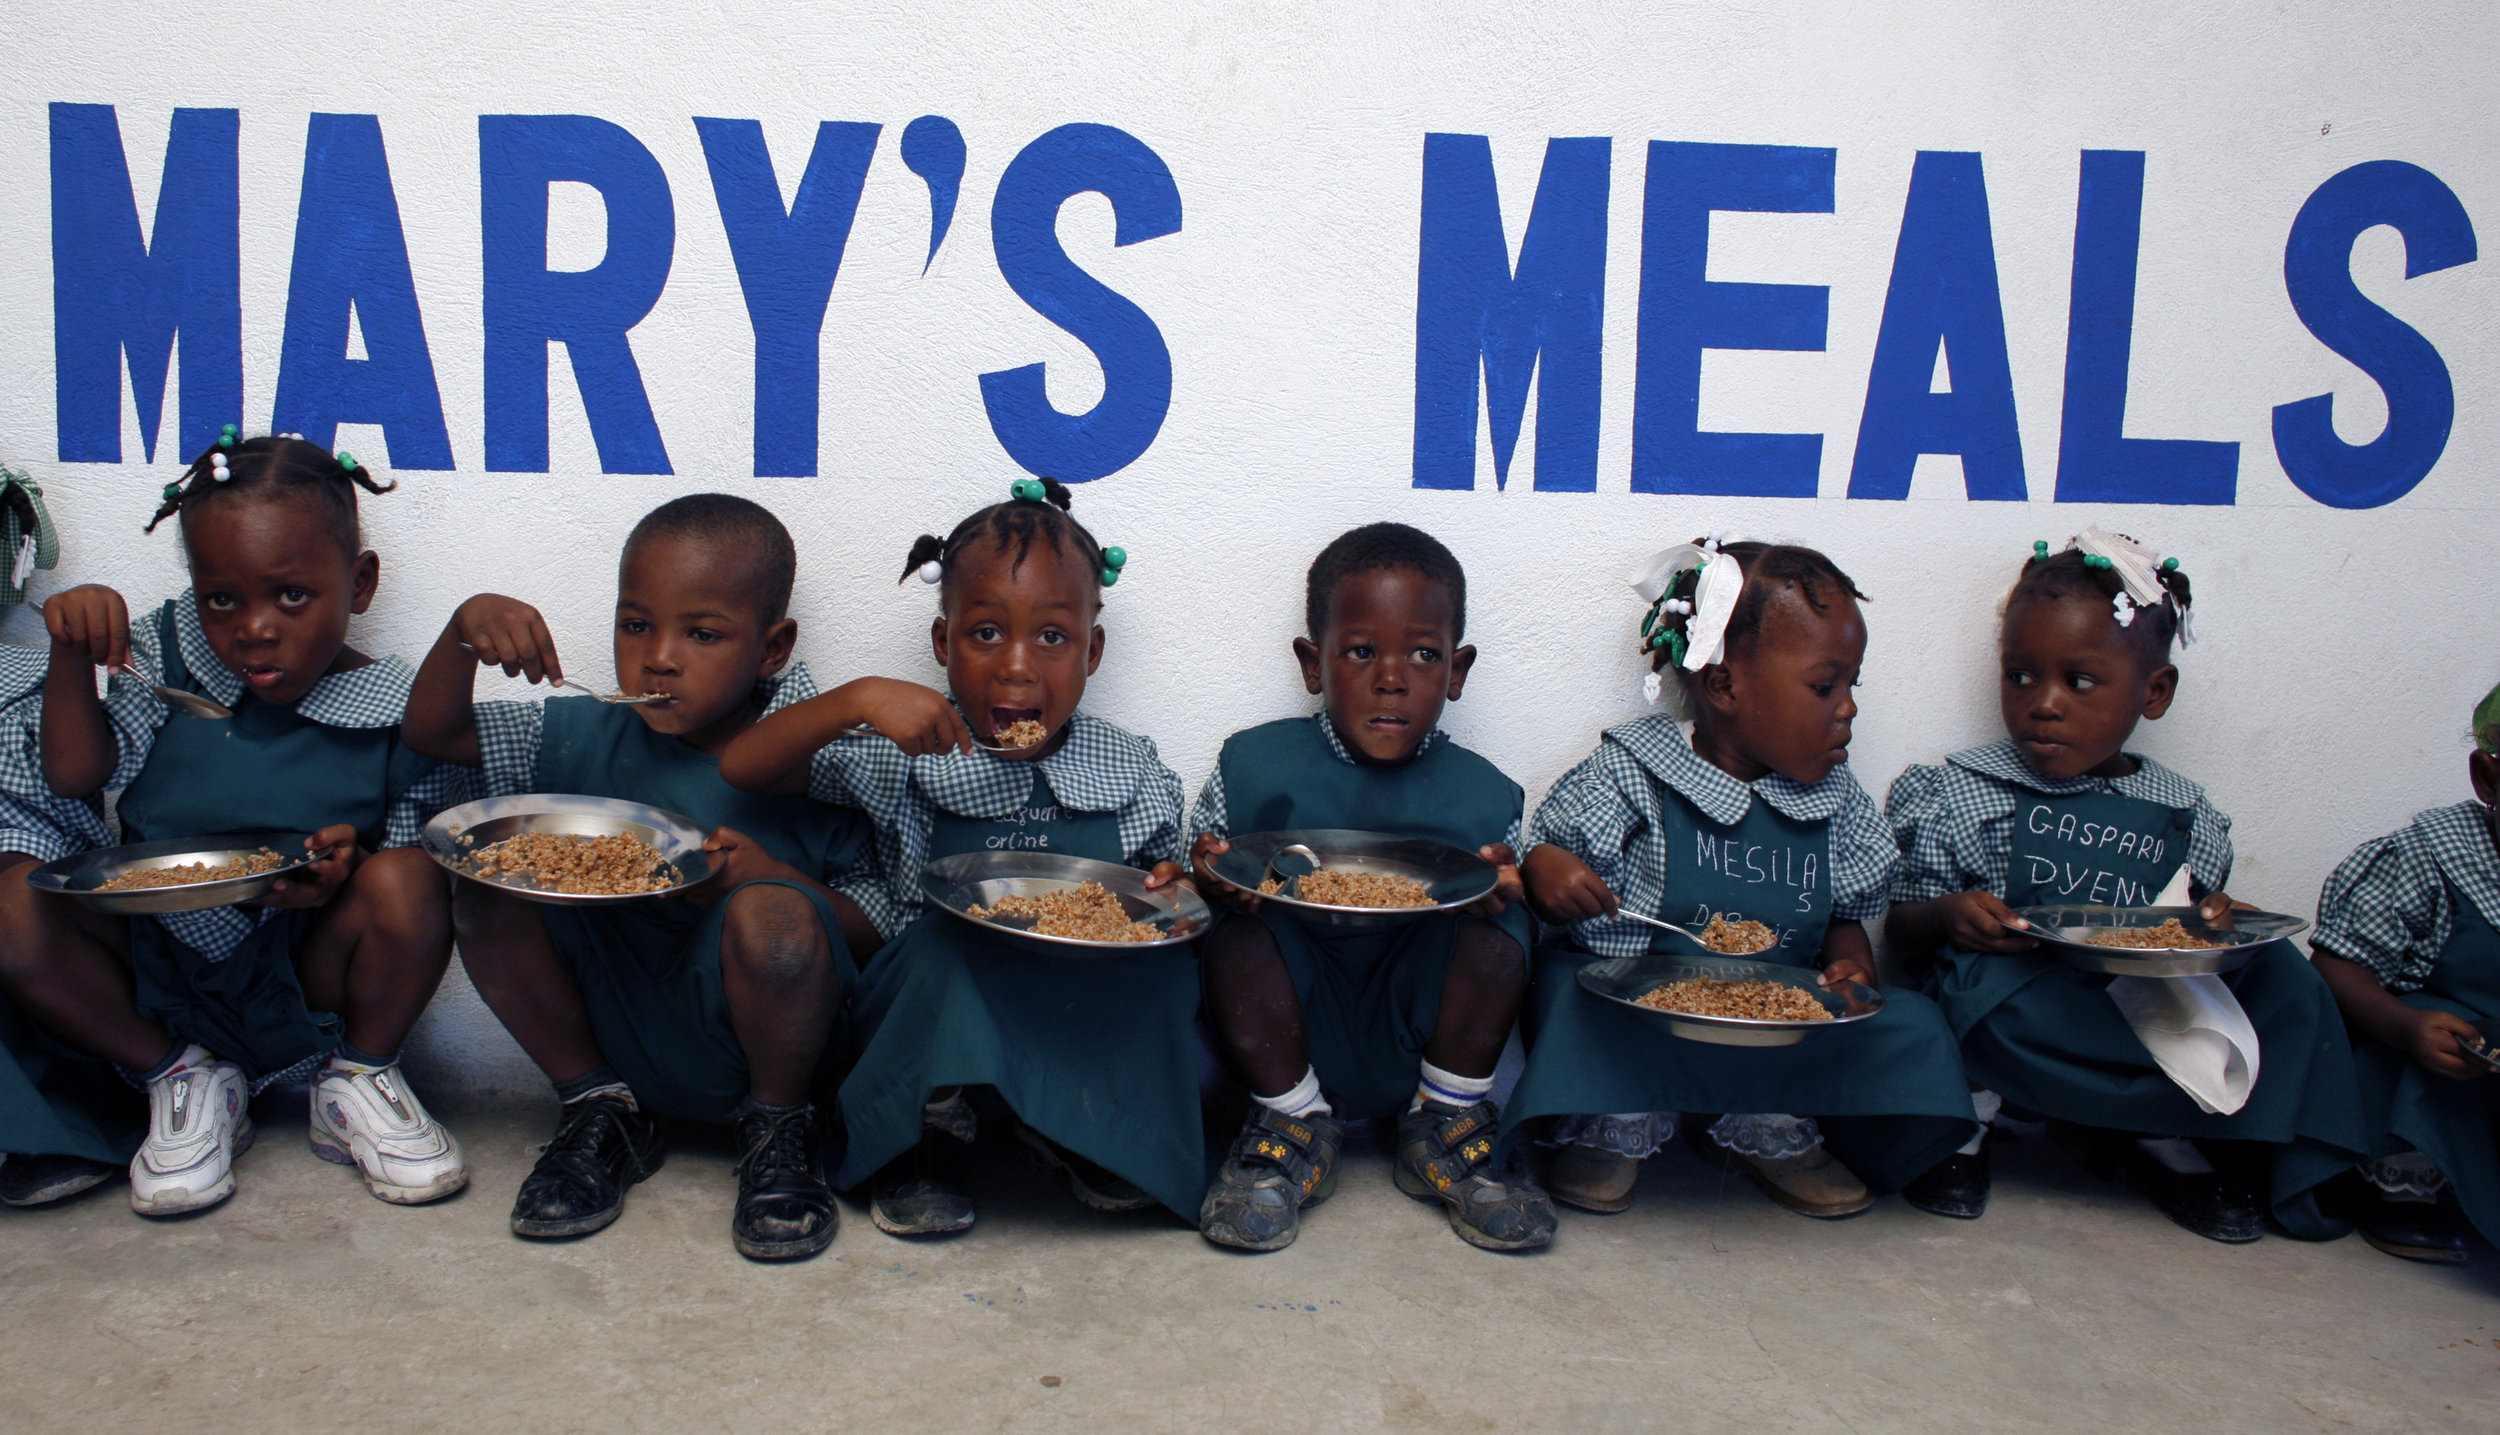 Mary's_Meals_comes_to_Cite_Soleil,_Haiti._PHOTO_BY_ANGELA_CATLIN.JPG